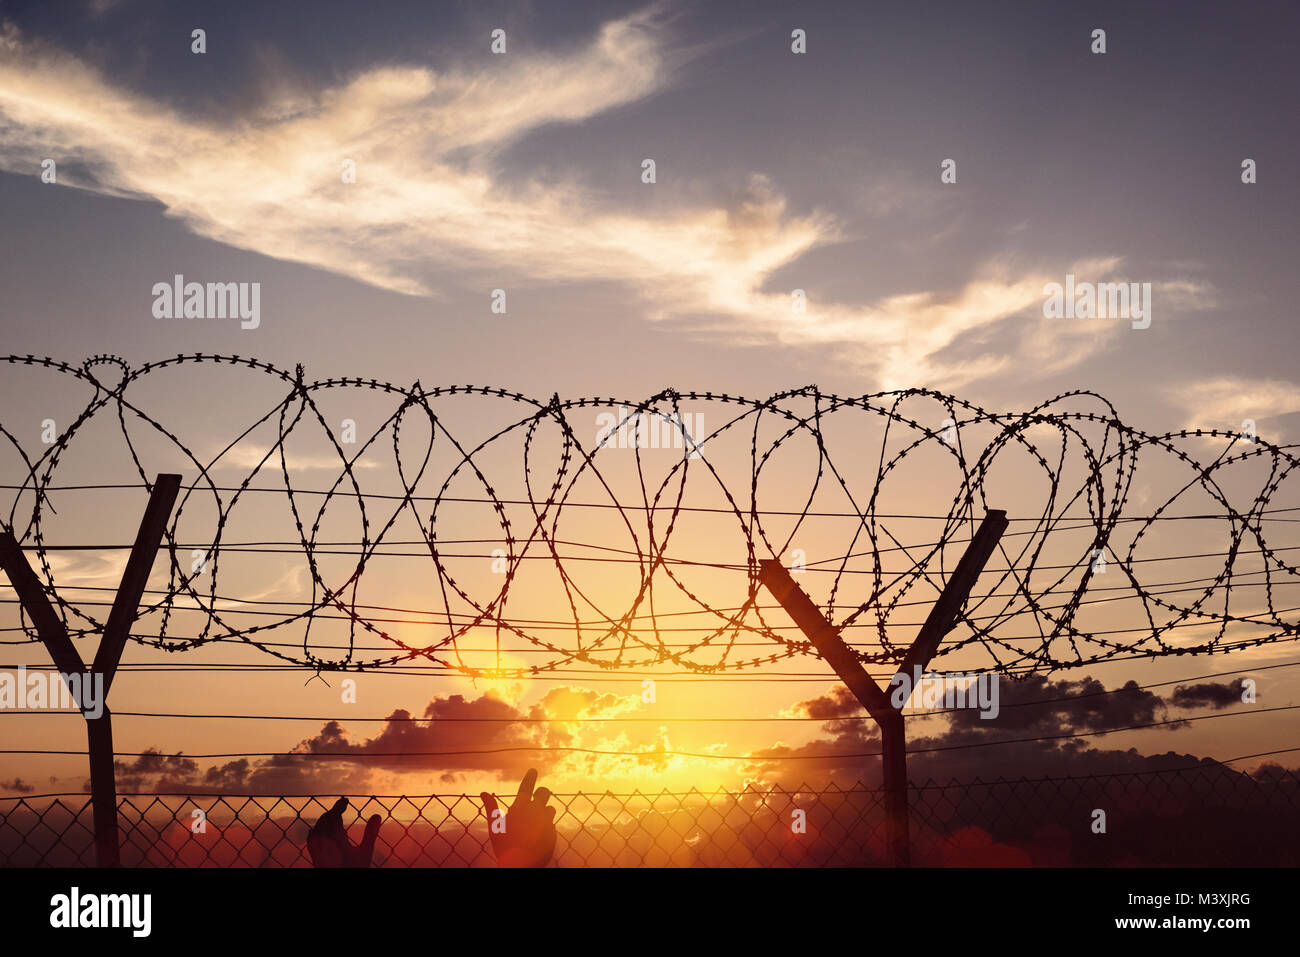 Silhouette of two hands on a fence at sunset - Stock Image